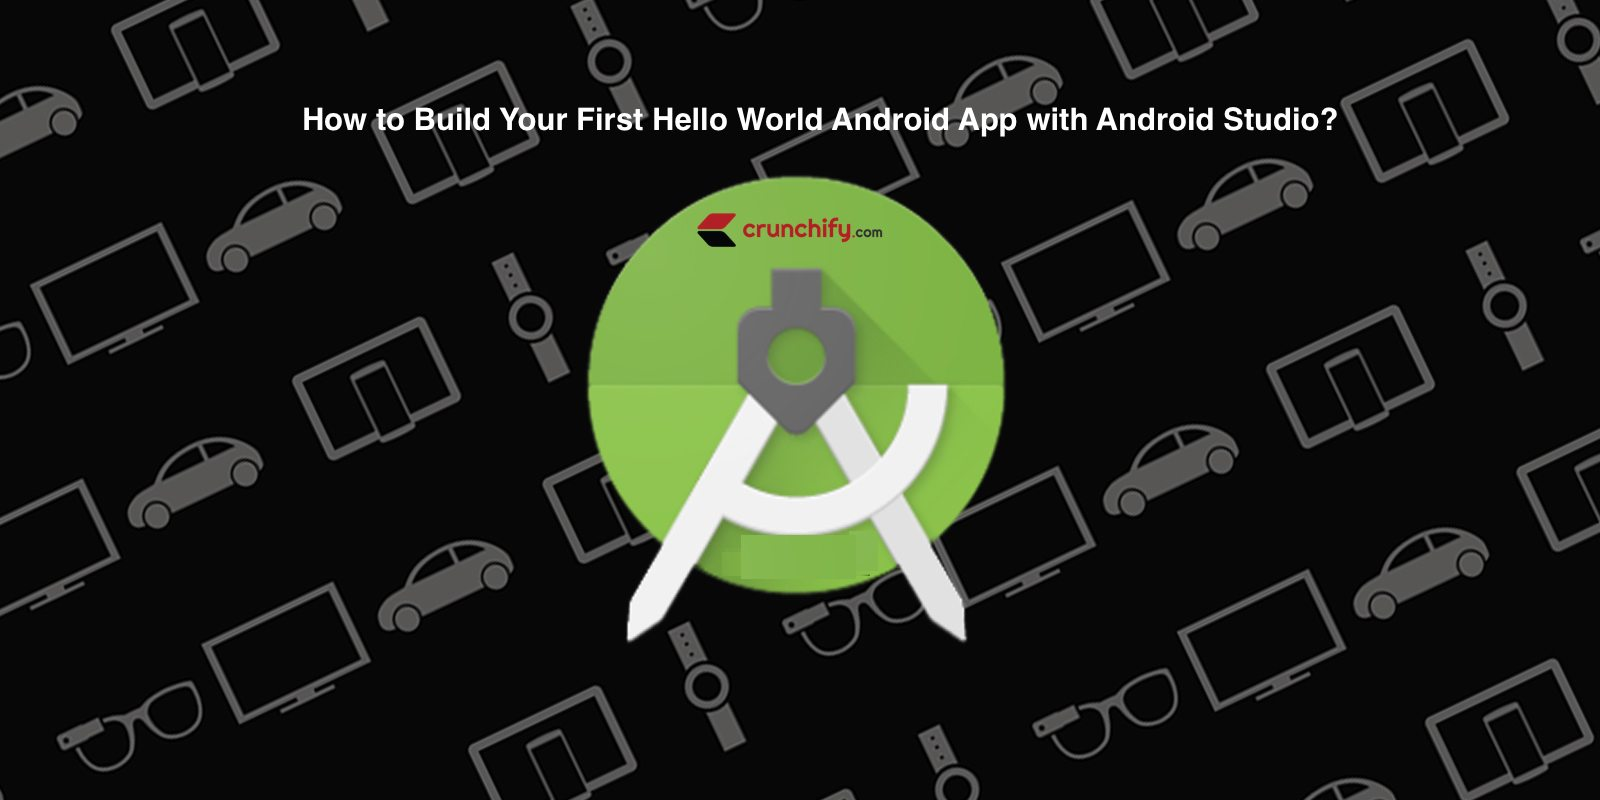 How to Build Your First Hello World Android App with Android Studio